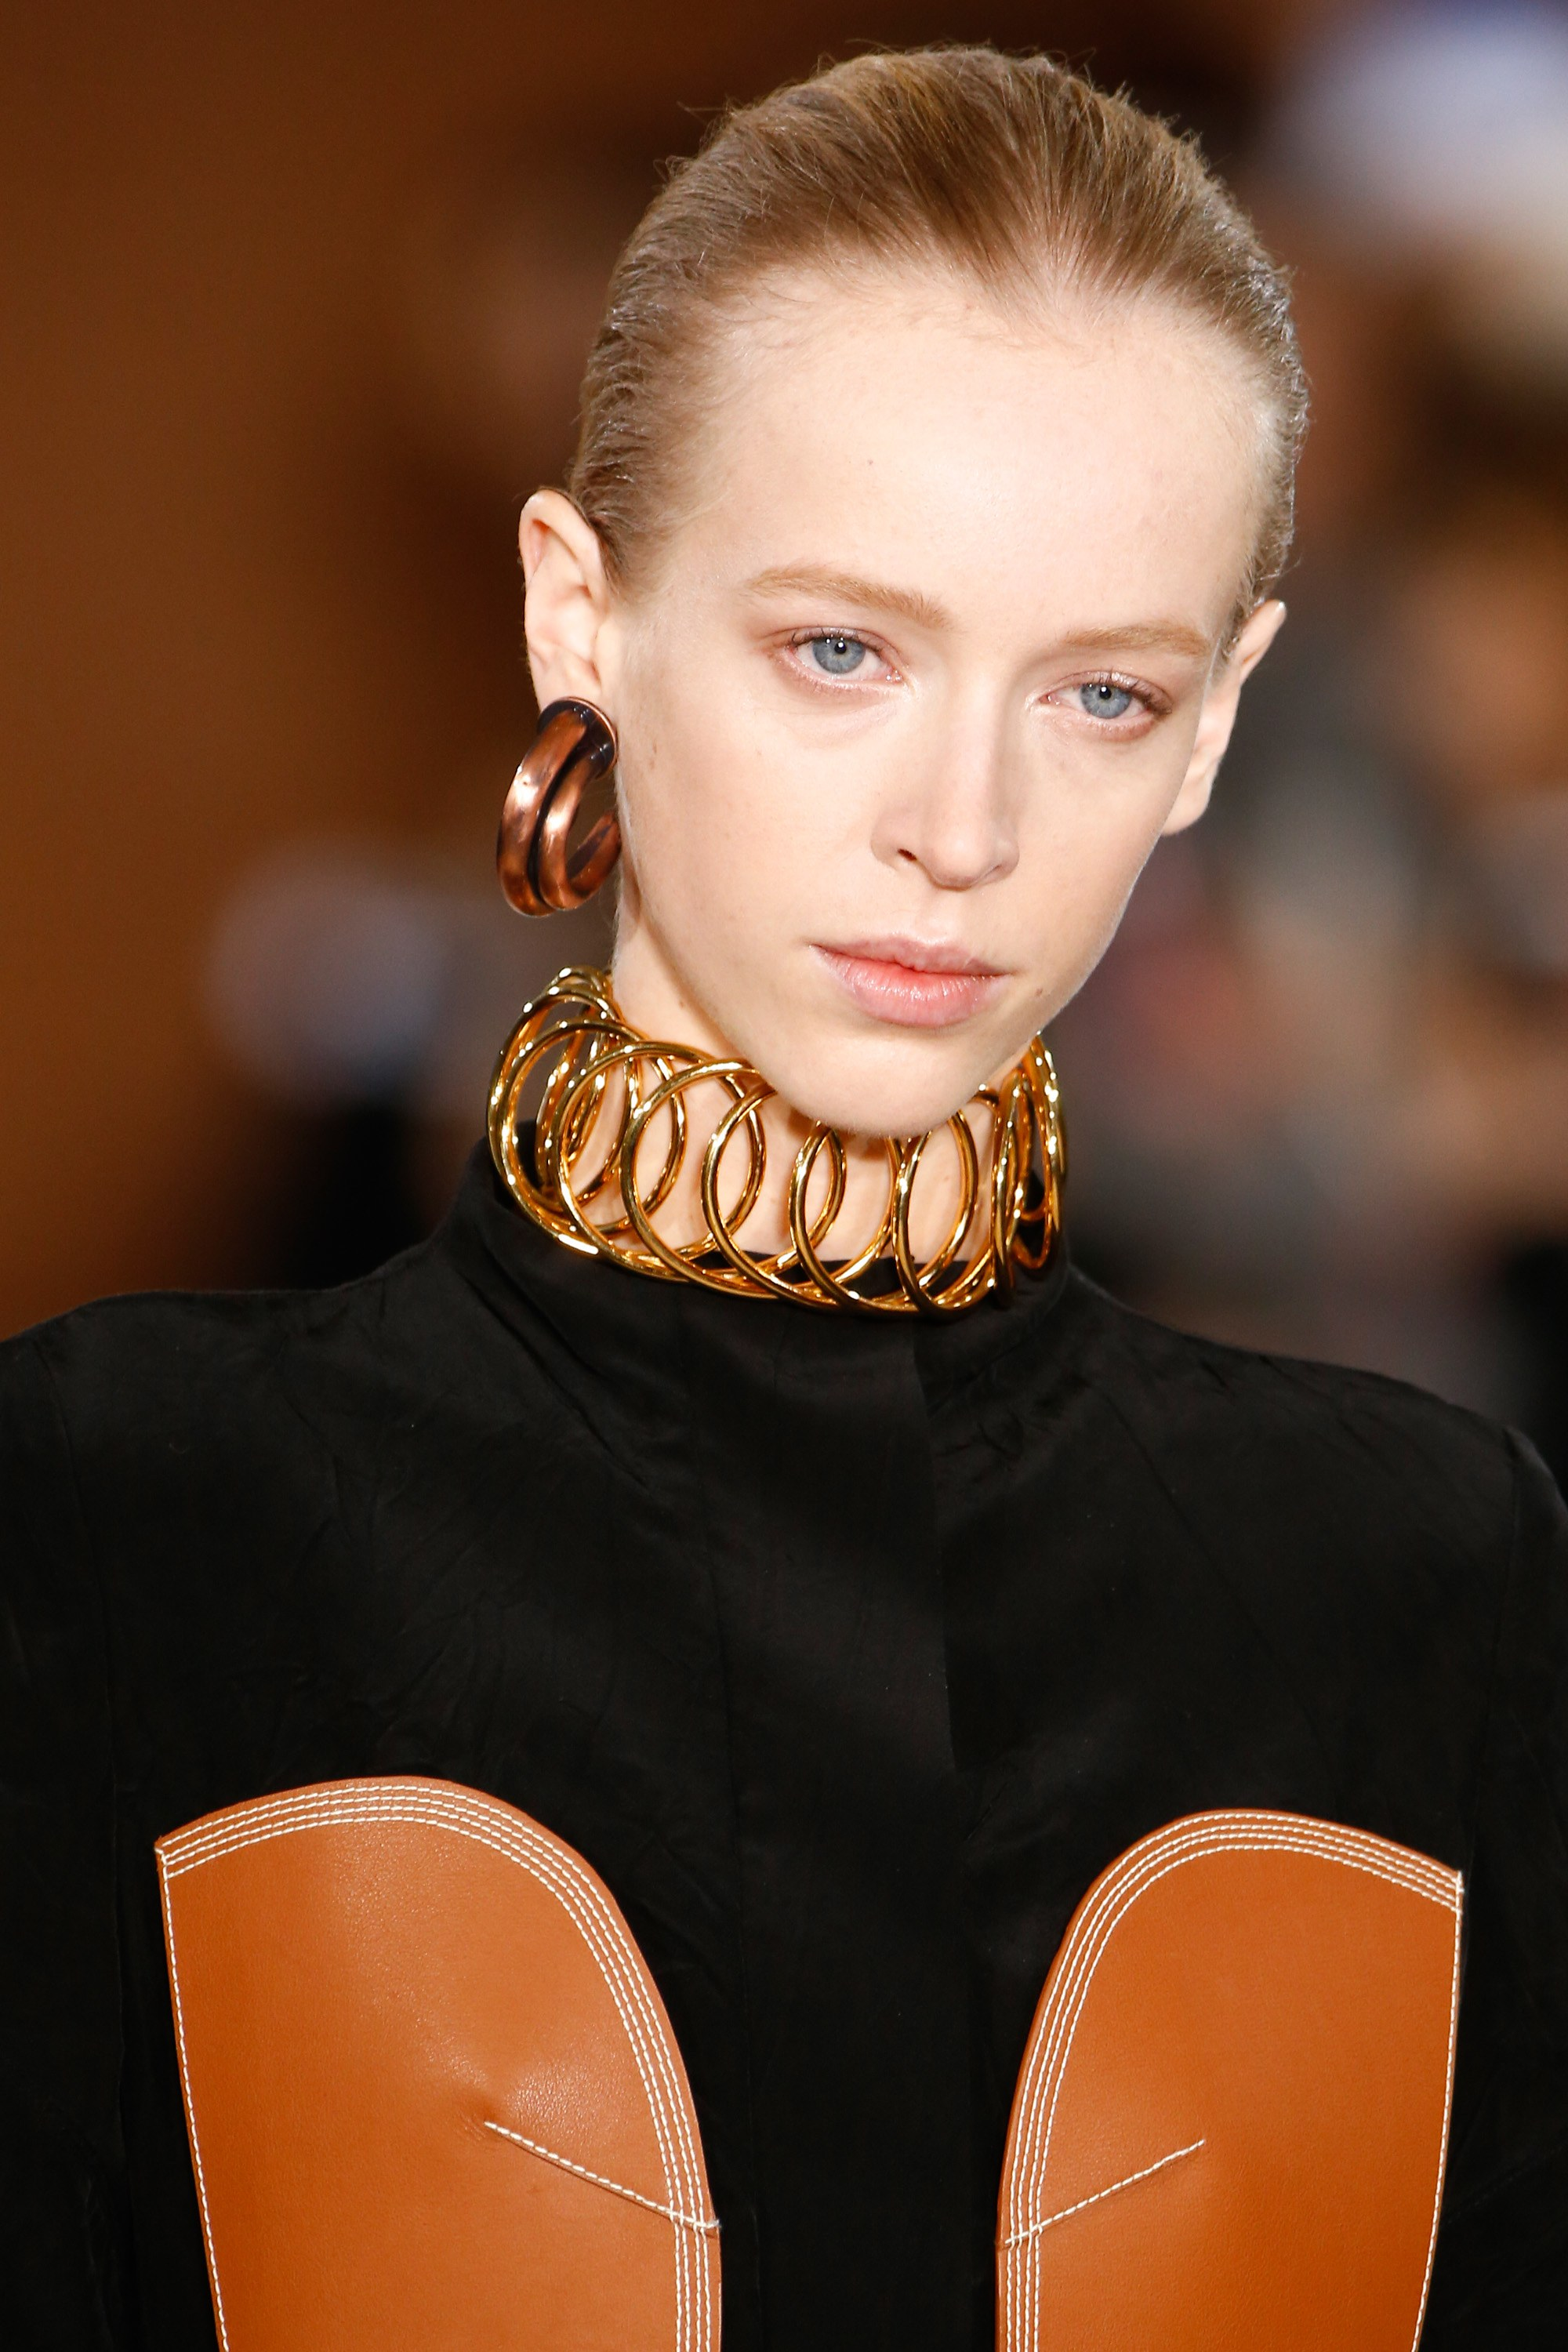 Tribal inspired choker from Loewe  's Fall 2016-17 collection.  Photo source:  Vogue  Runway.